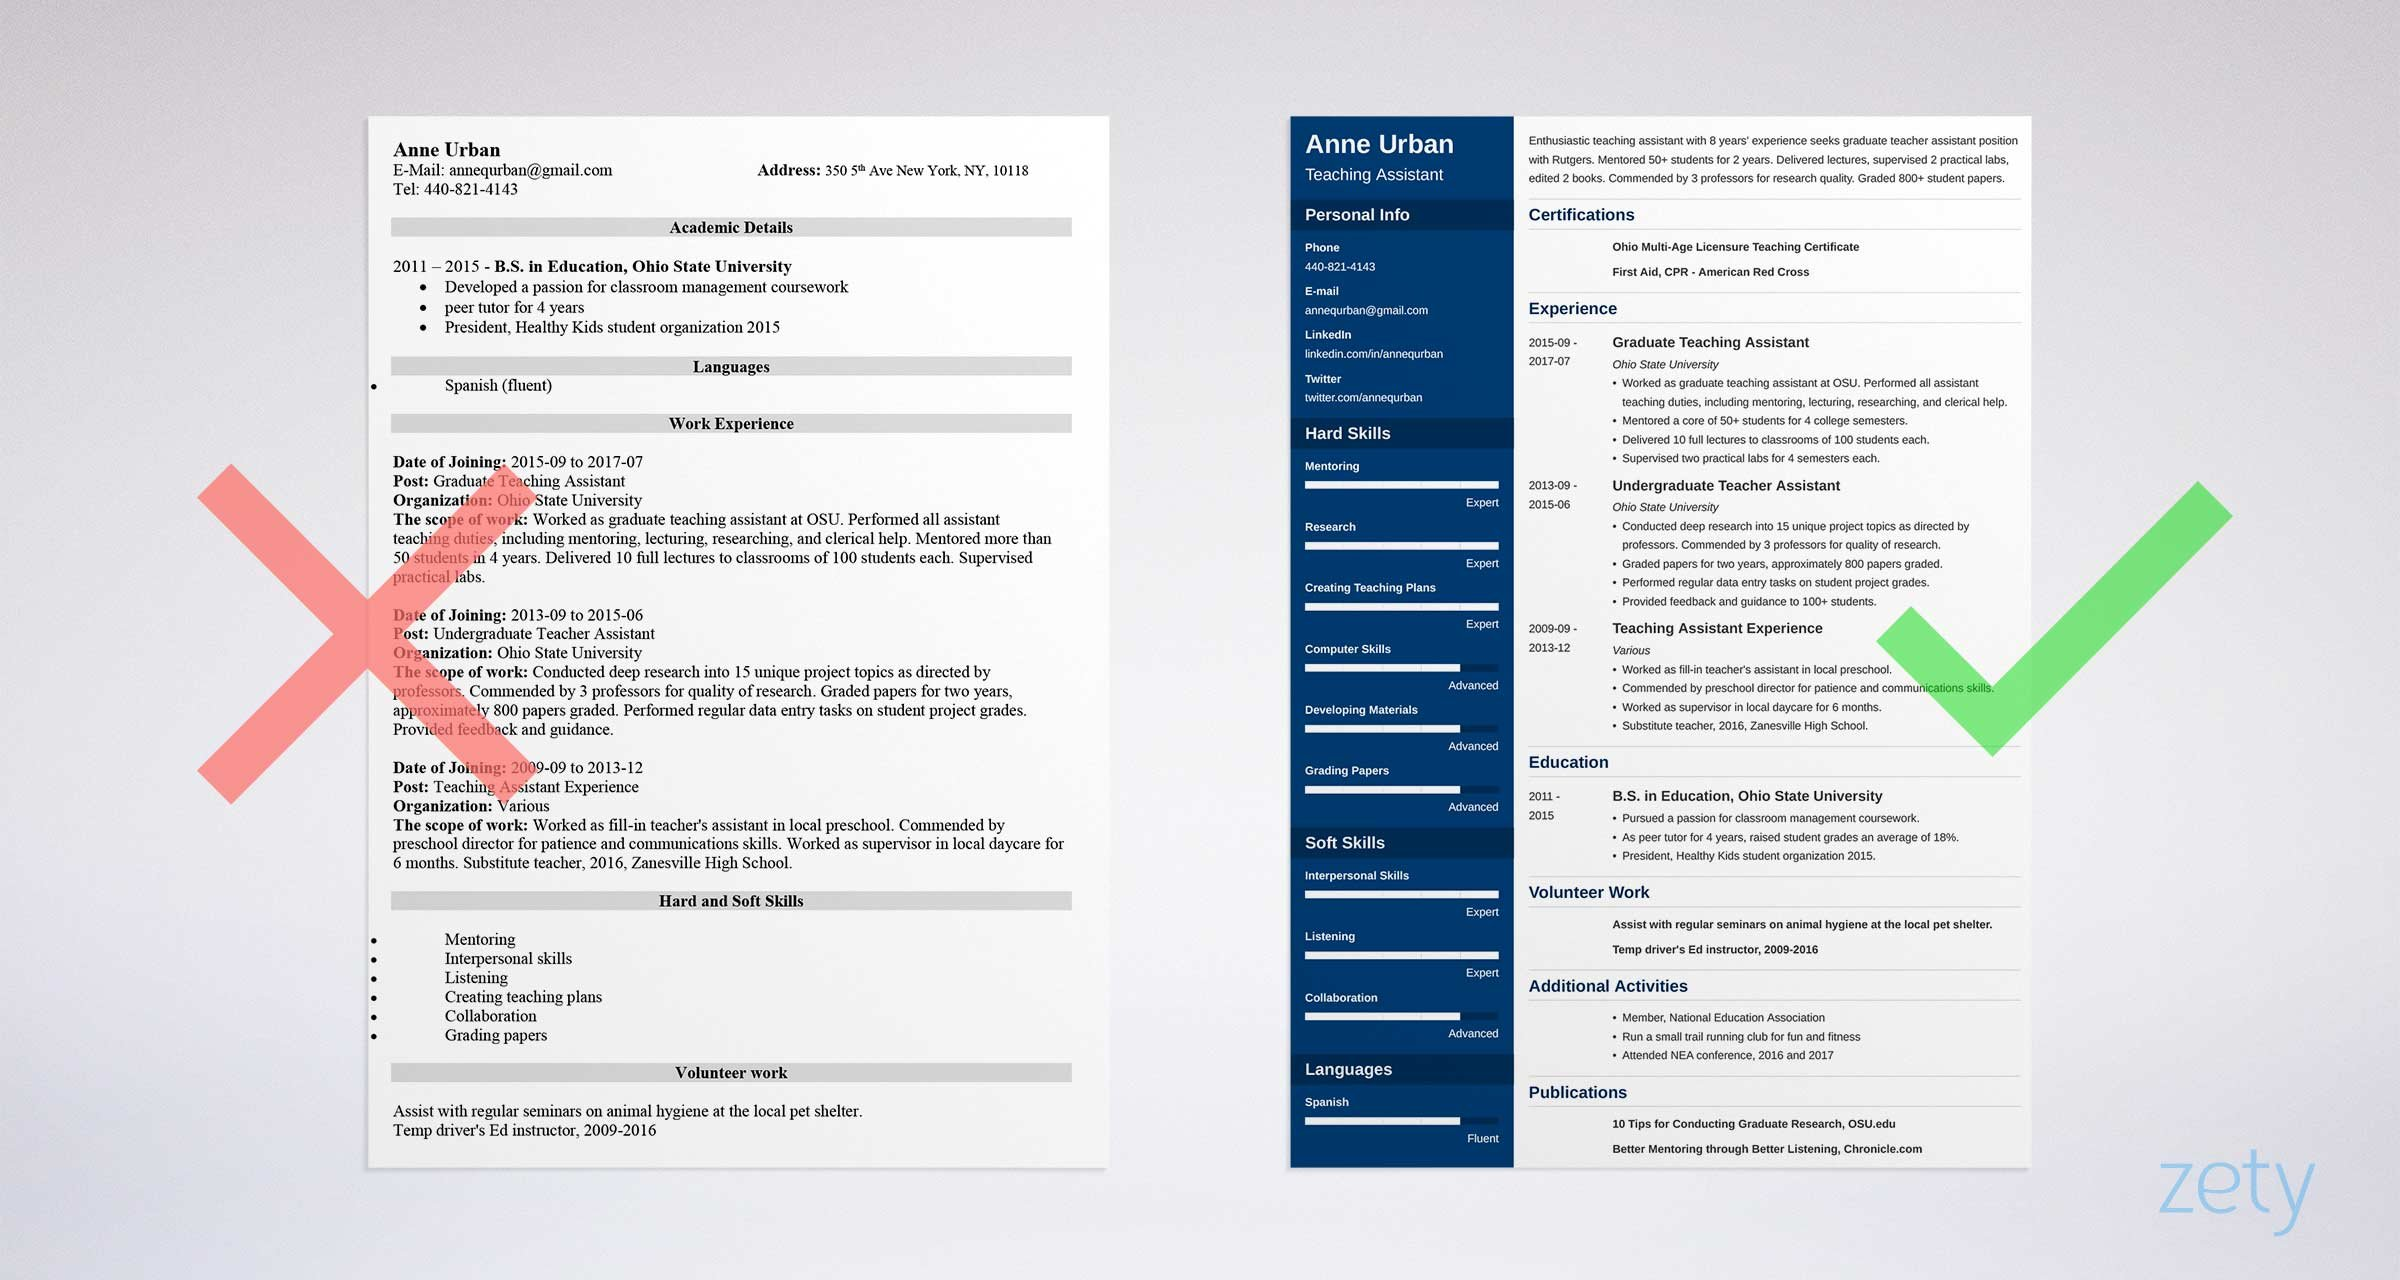 best font for resume size standard professional pairings text format teaching assistant Resume Best Text Format For Resume